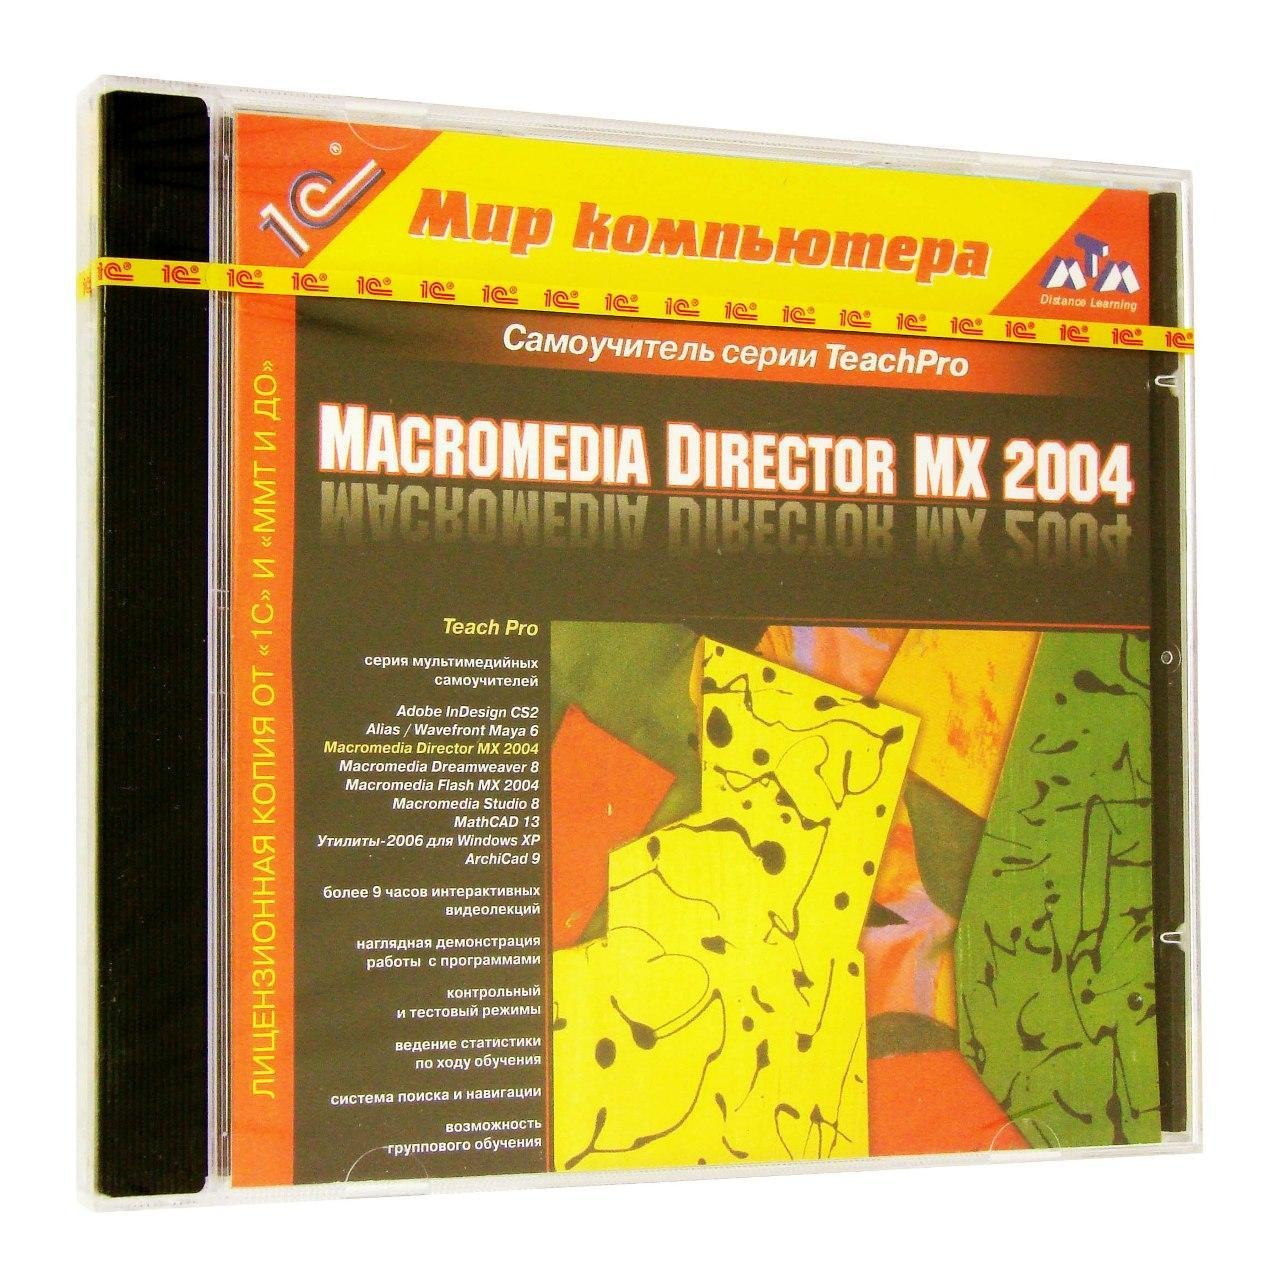 "Компьютерный компакт-диск Macromedia Director MX 2004 TeachPro (PC), фирма ""1C"", 1CD"